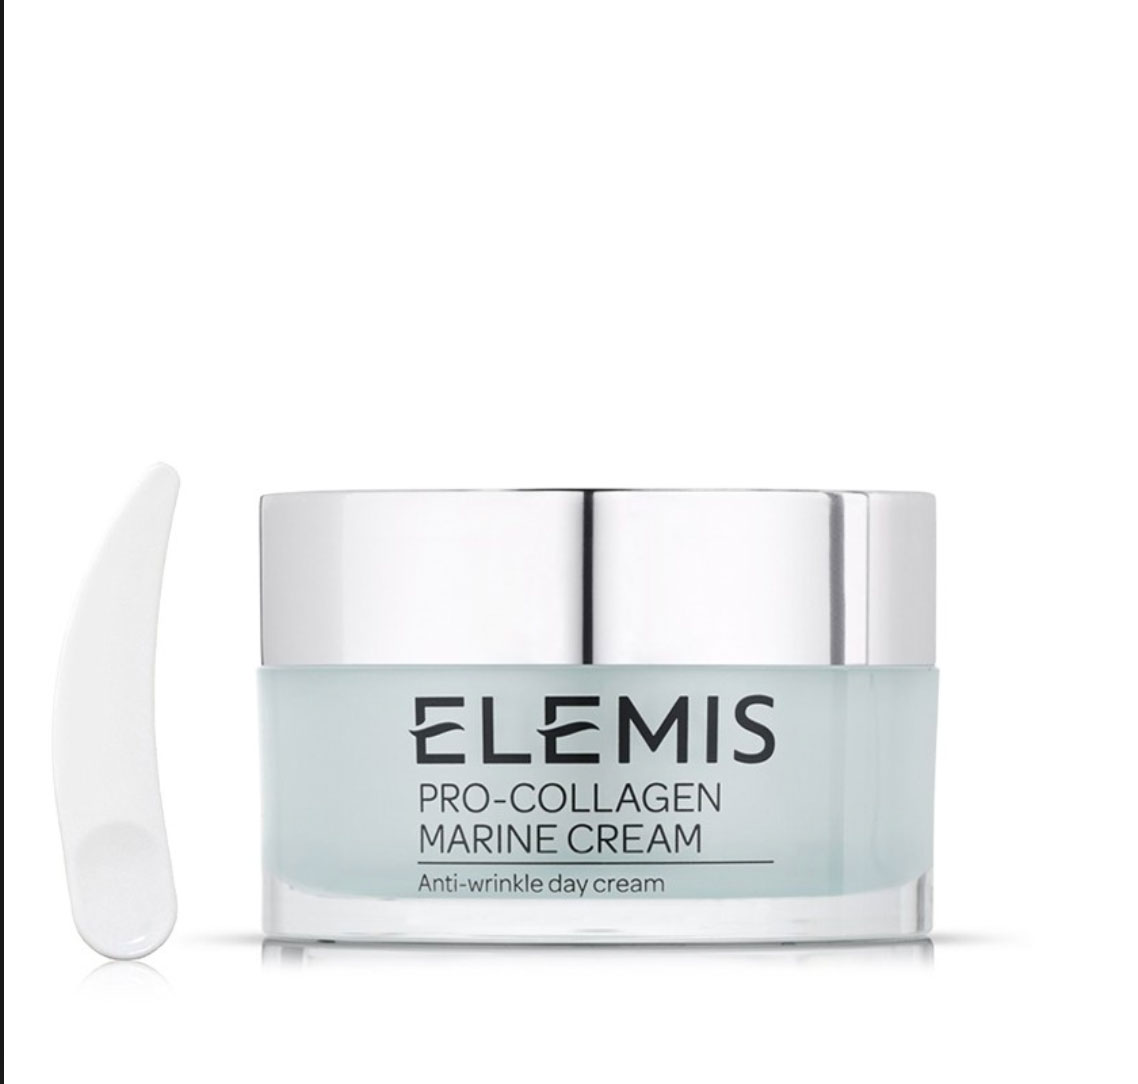 Pro-Collagen Marine Cream, de Elemis.